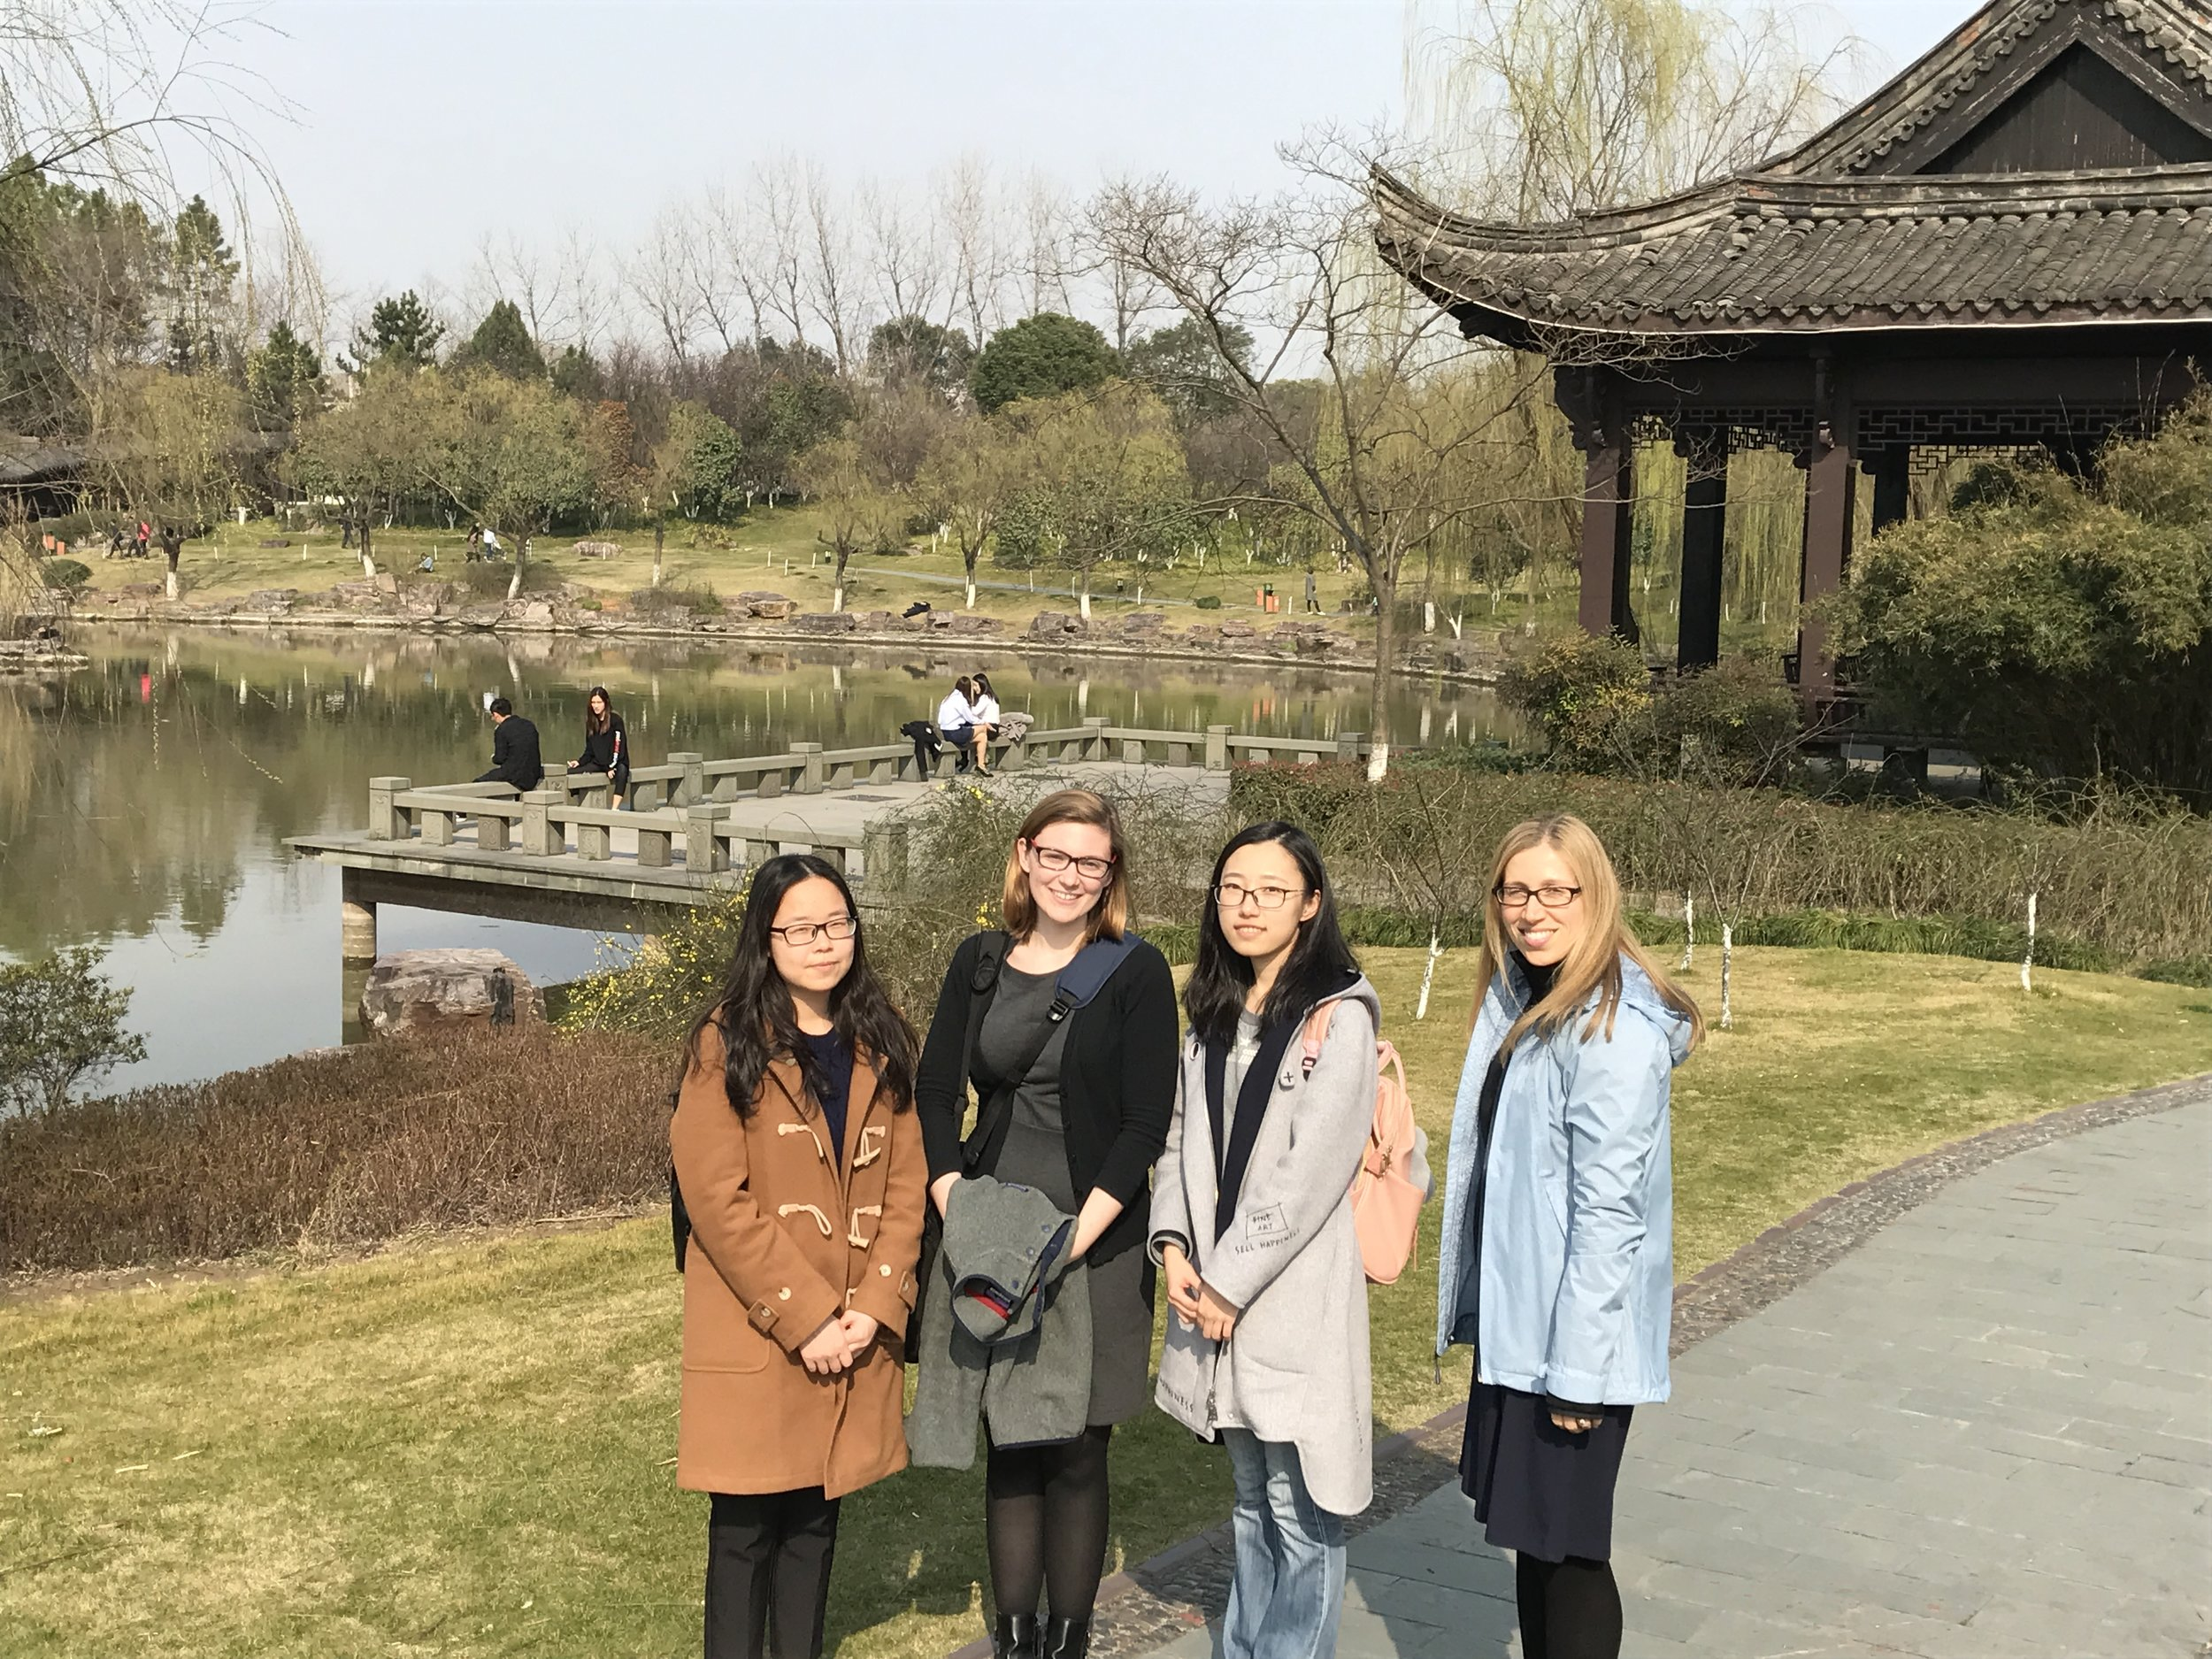 Kimmy and Janet took a stroll with graduate students Joy and Nora after a meeting at Zhejiang Sci-Tech University.